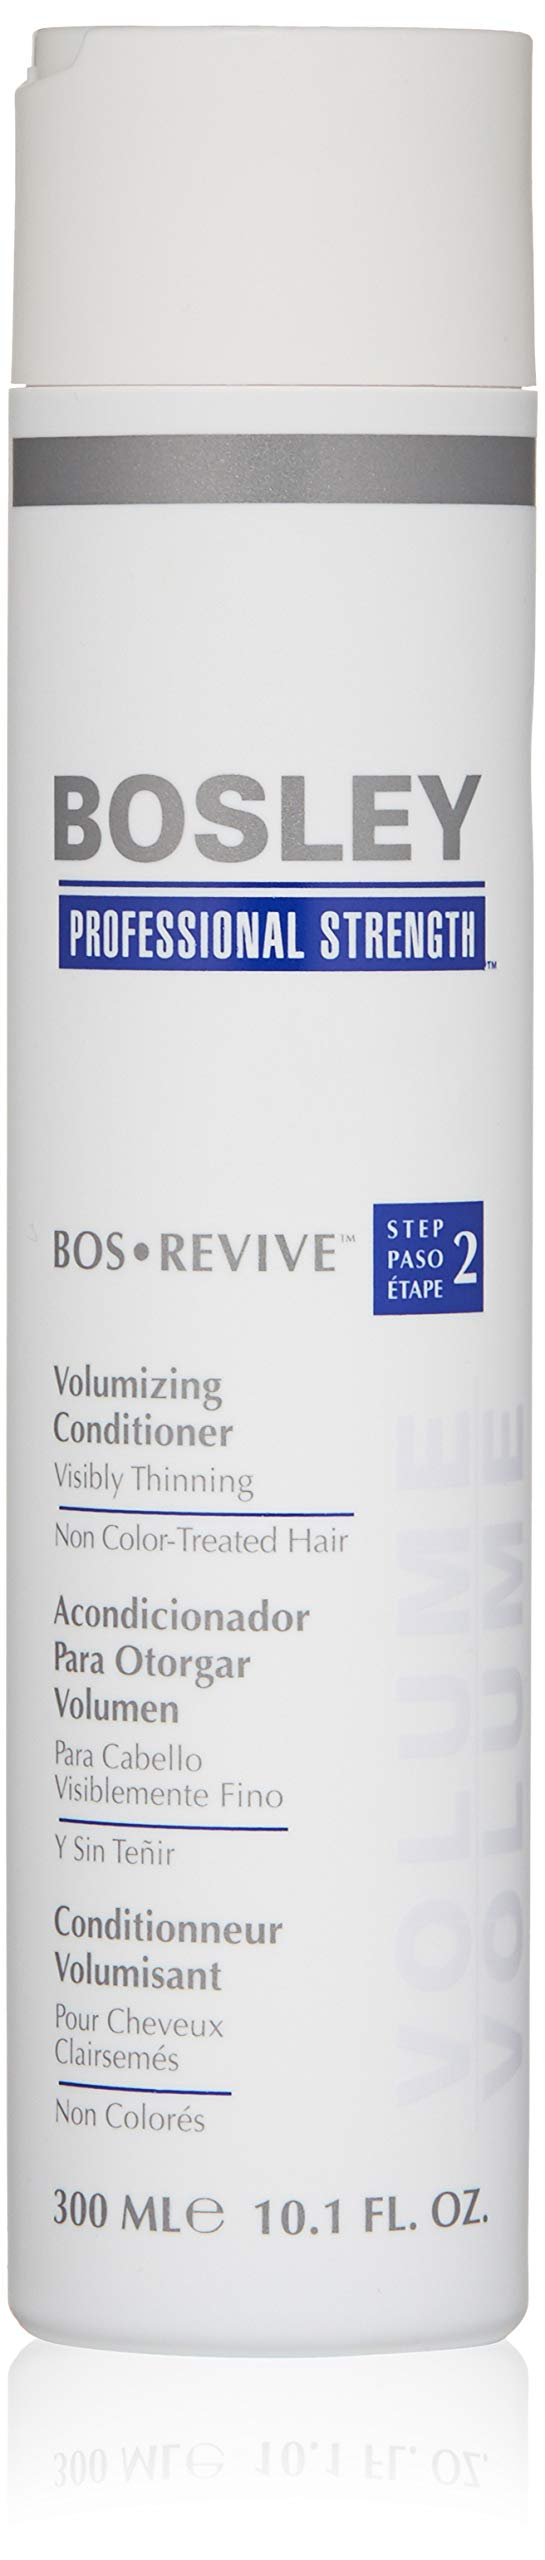 Bosley Bos Revive Volumizing Conditioner for Visibly Thinning Non Color-Treated Hair, 10.1 Ounce by Bosley Professional Strength